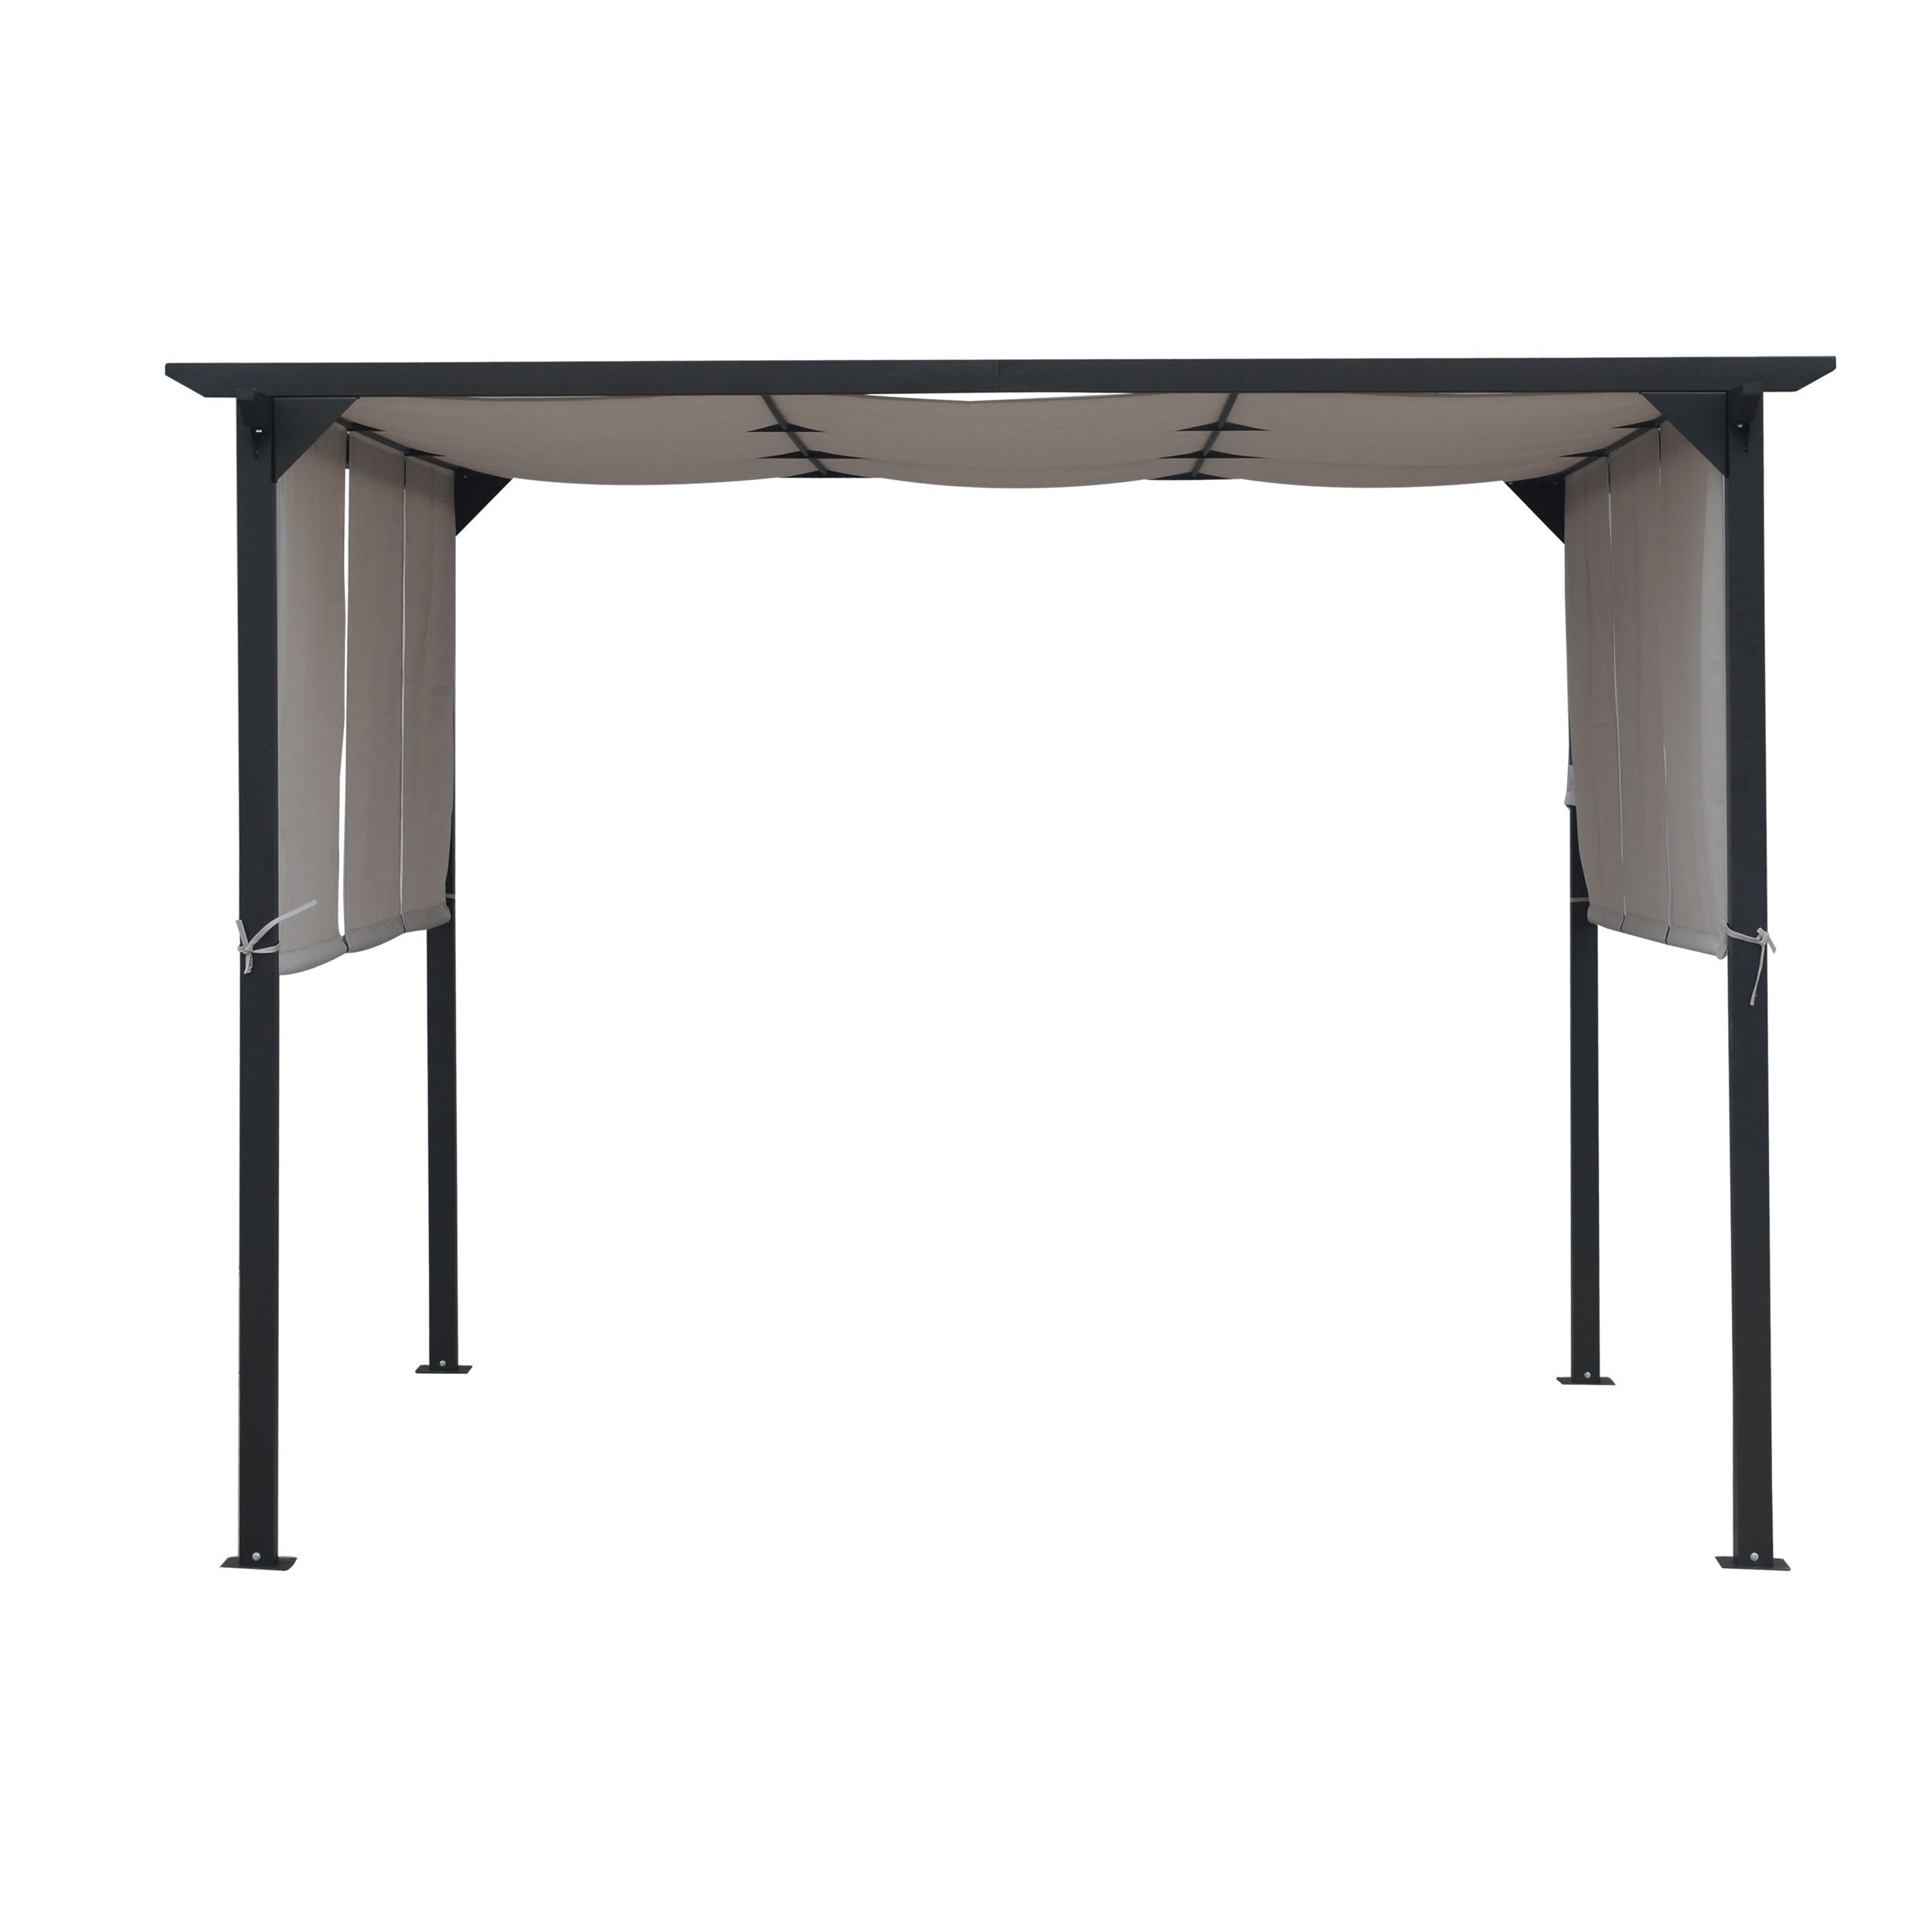 Lawrence Outdoor Steel 10-foot Gazebo by Christopher Knight Home ...